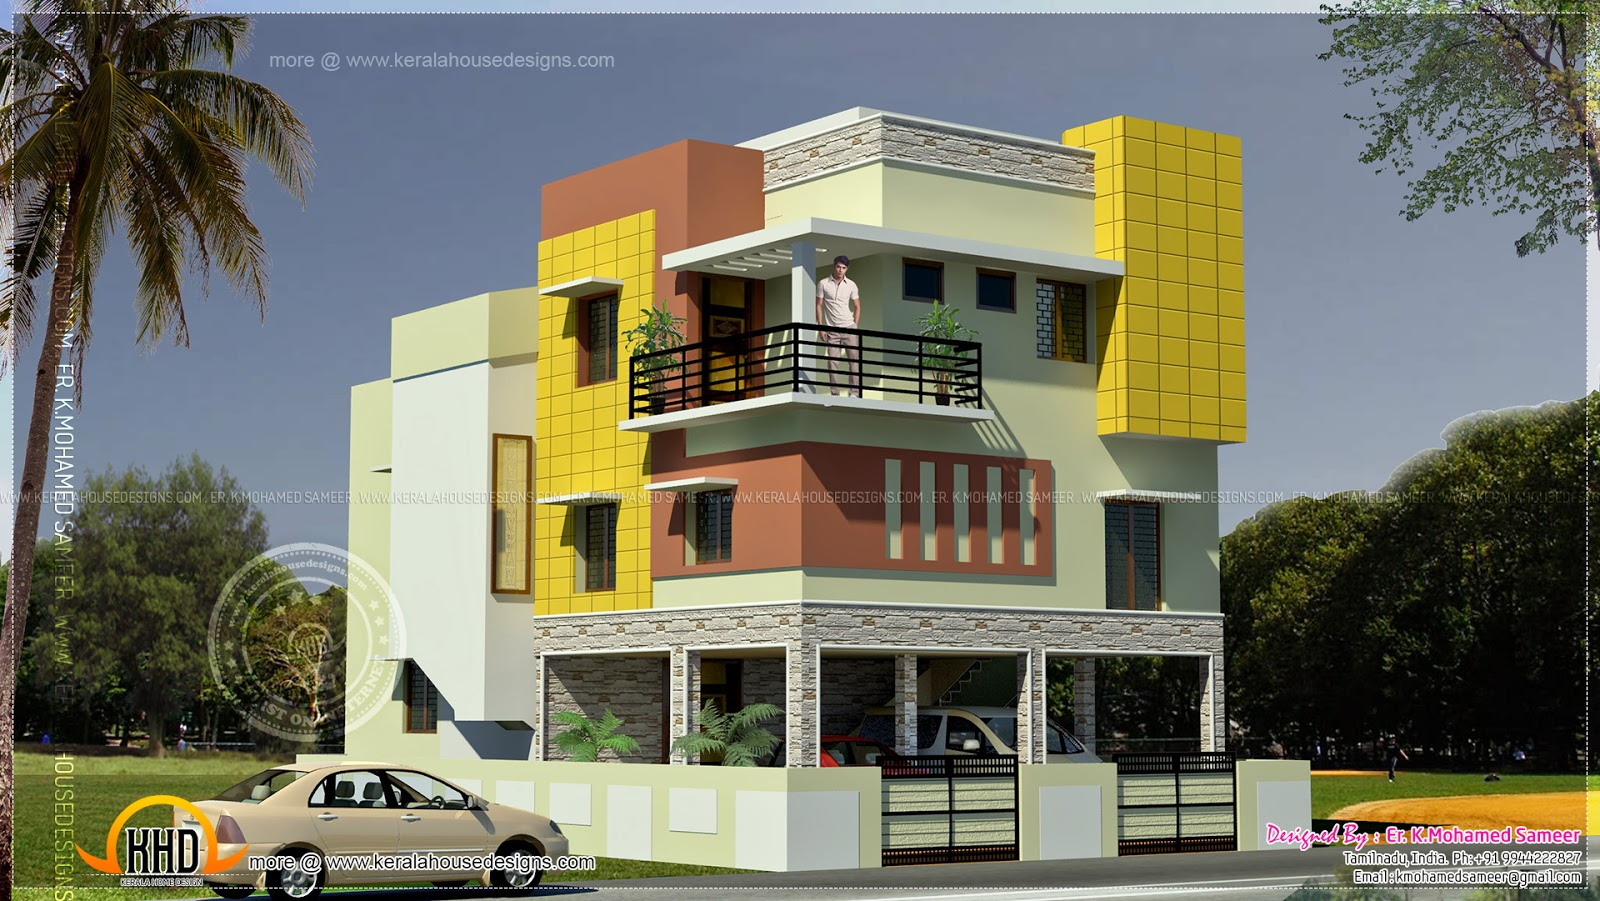 Duplex house in tamilnadu kerala home design and floor plans for Home designs in tamilnadu